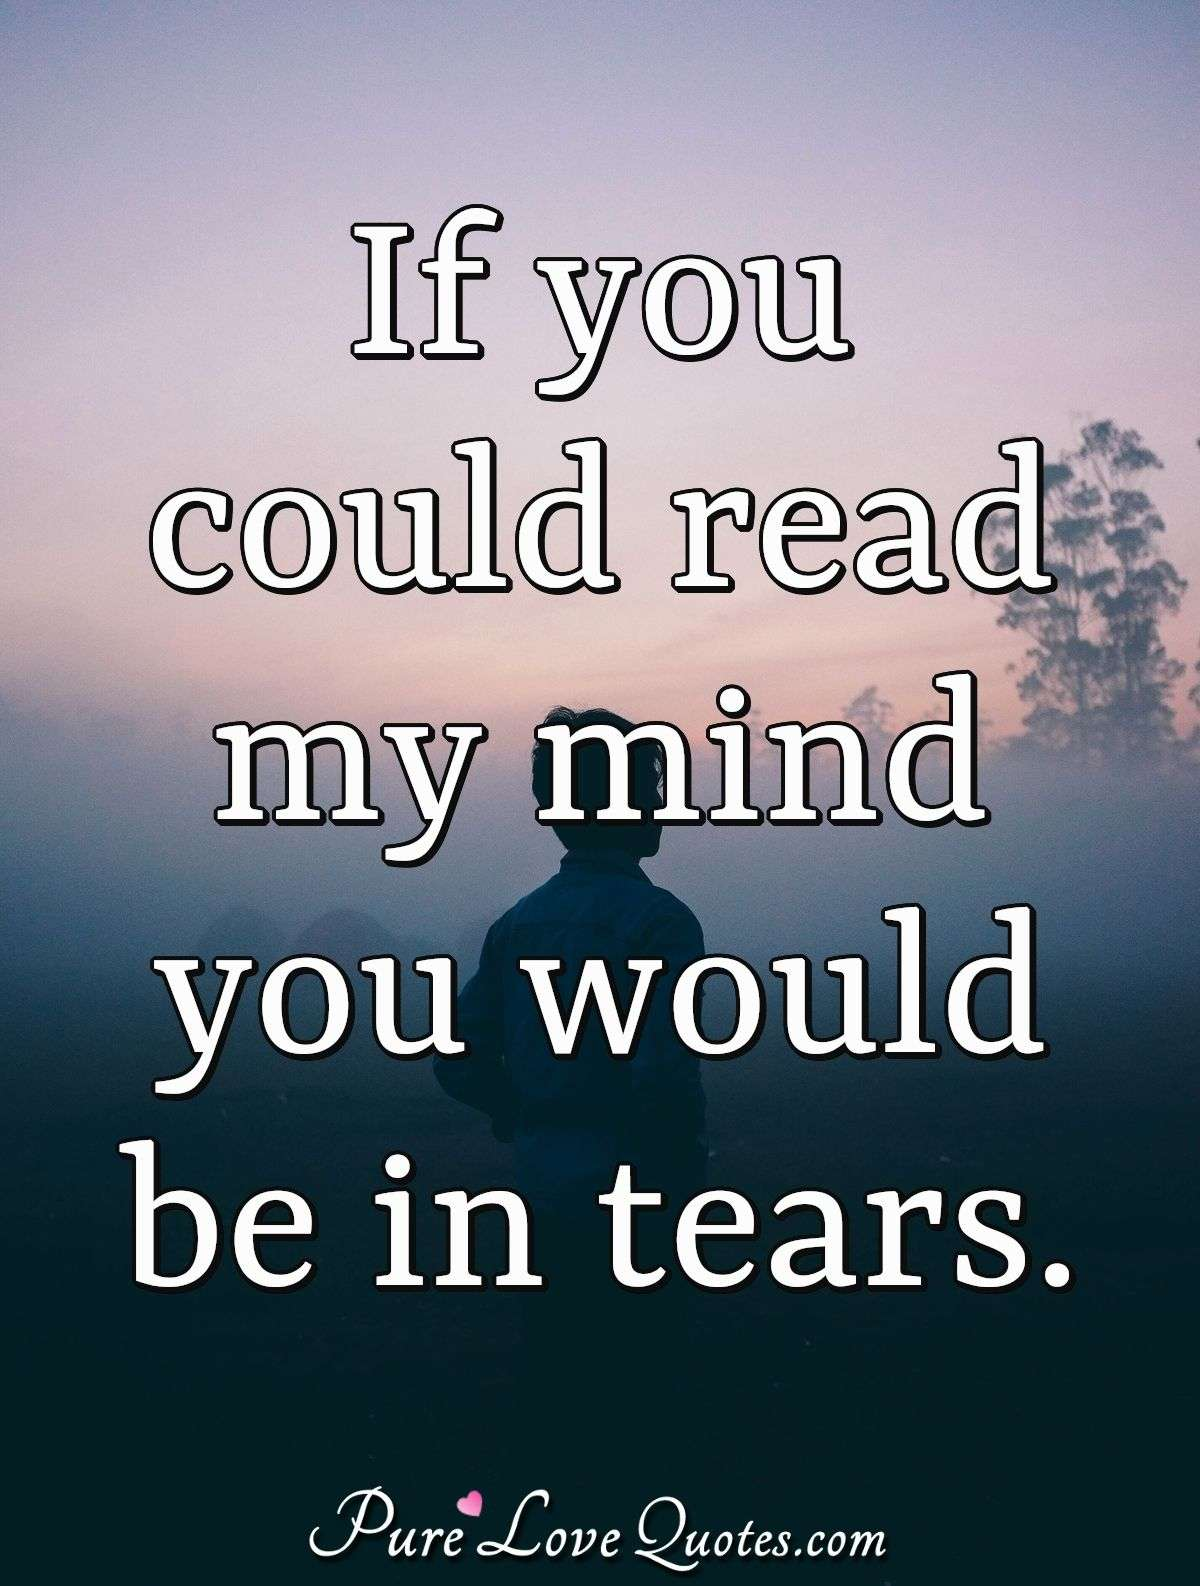 If you could read my mind you would be in tears. - Anonymous